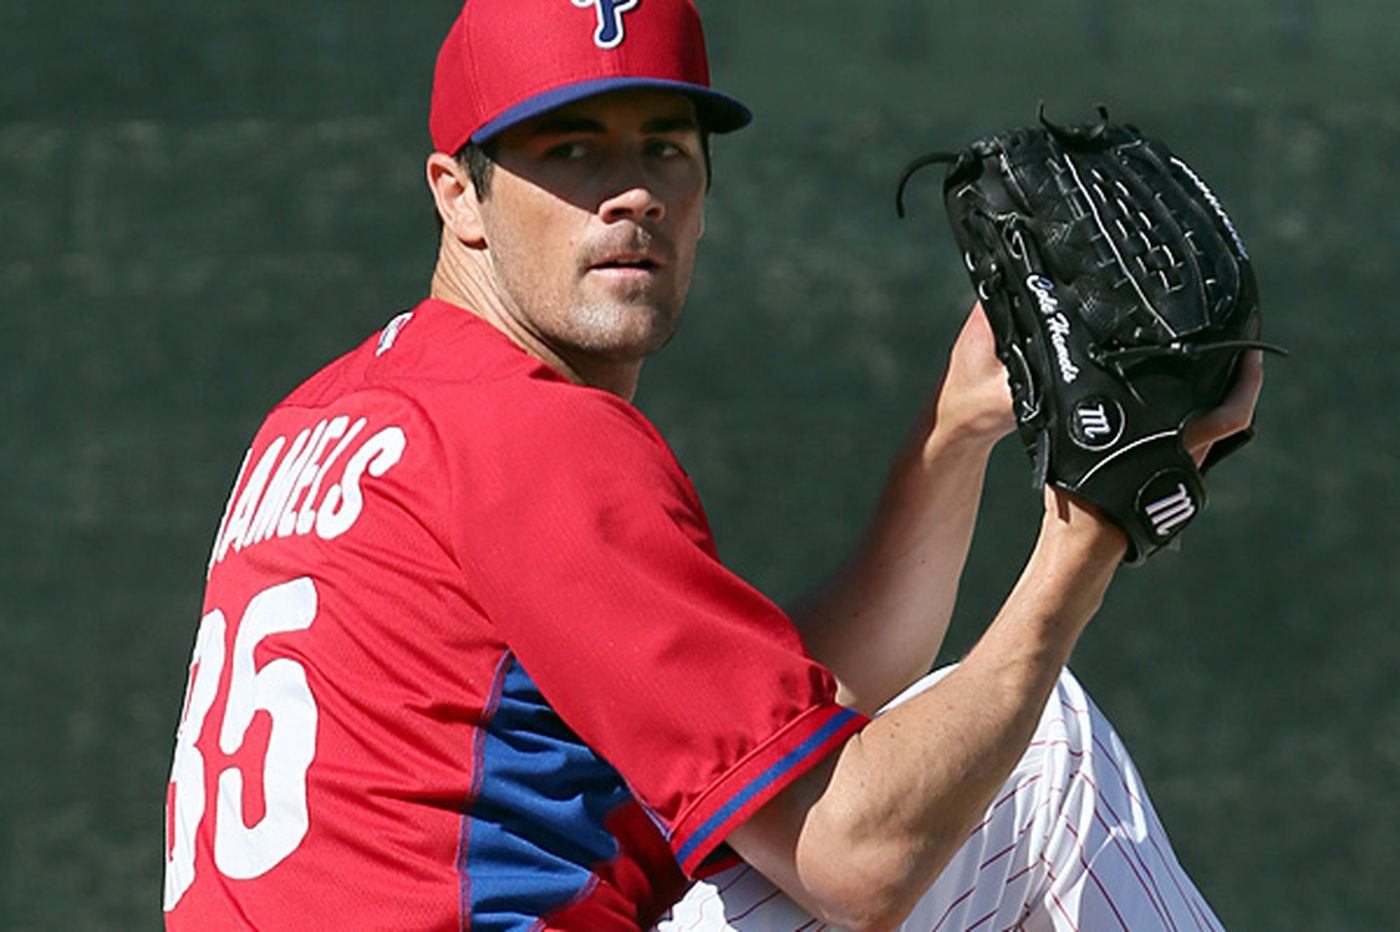 Phillies Notes: Hamels to make season debut against Dodgers on Wednesday